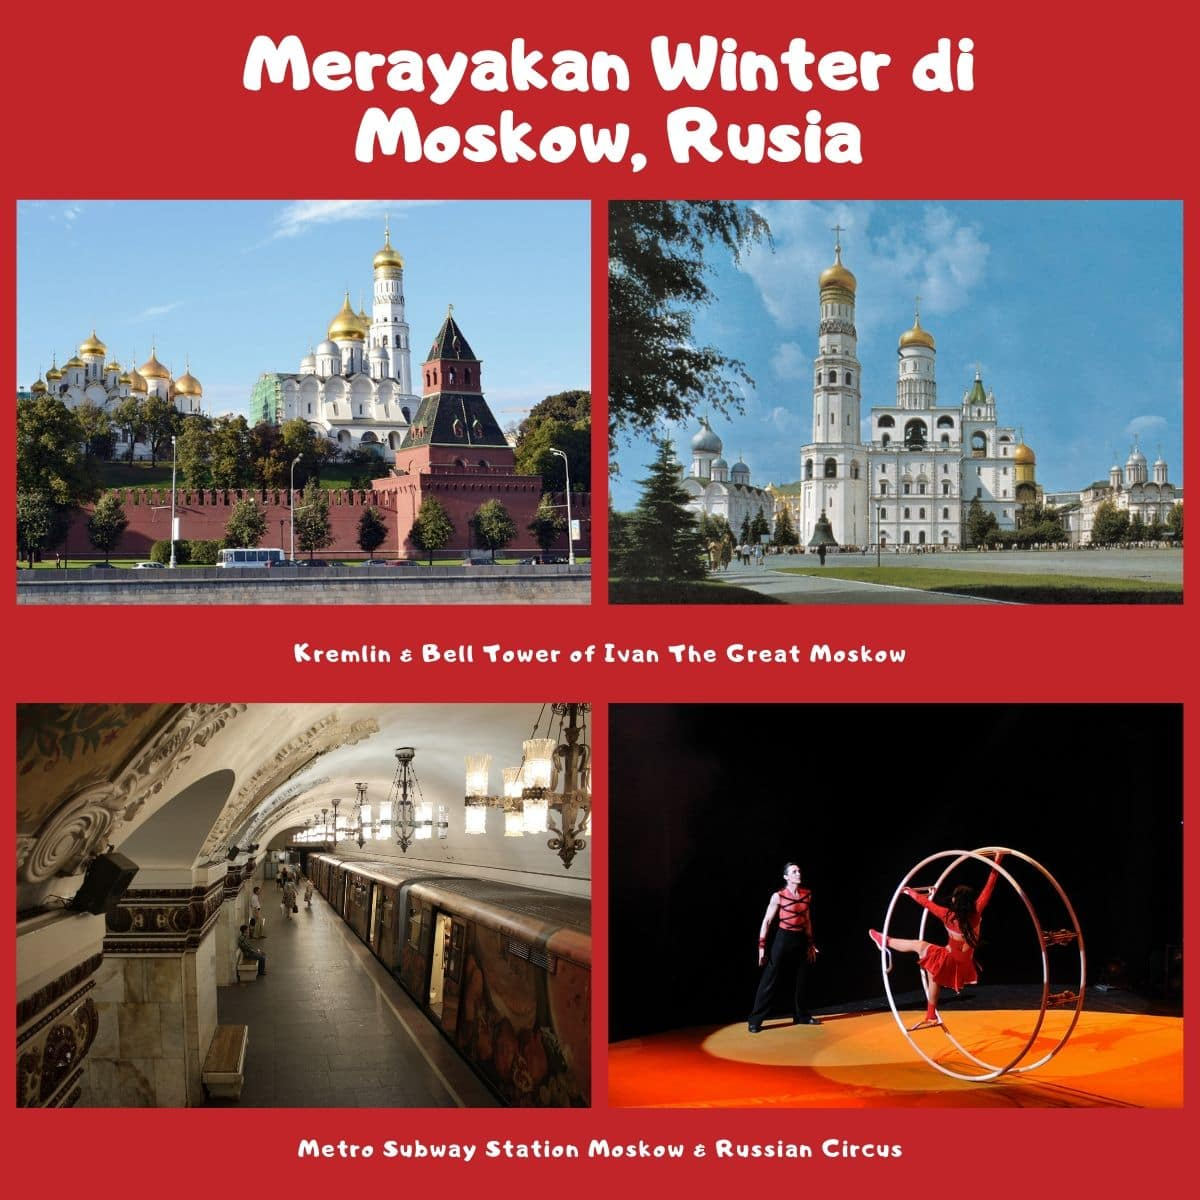 Itinerary Wisata di Rusia Liburan Musim Dingin Selama 10D - Kremlin, Bell Tower of Ivan The Great, Metro Subway Station, & Russian Circus - Sumber Flickr & Wikimedia